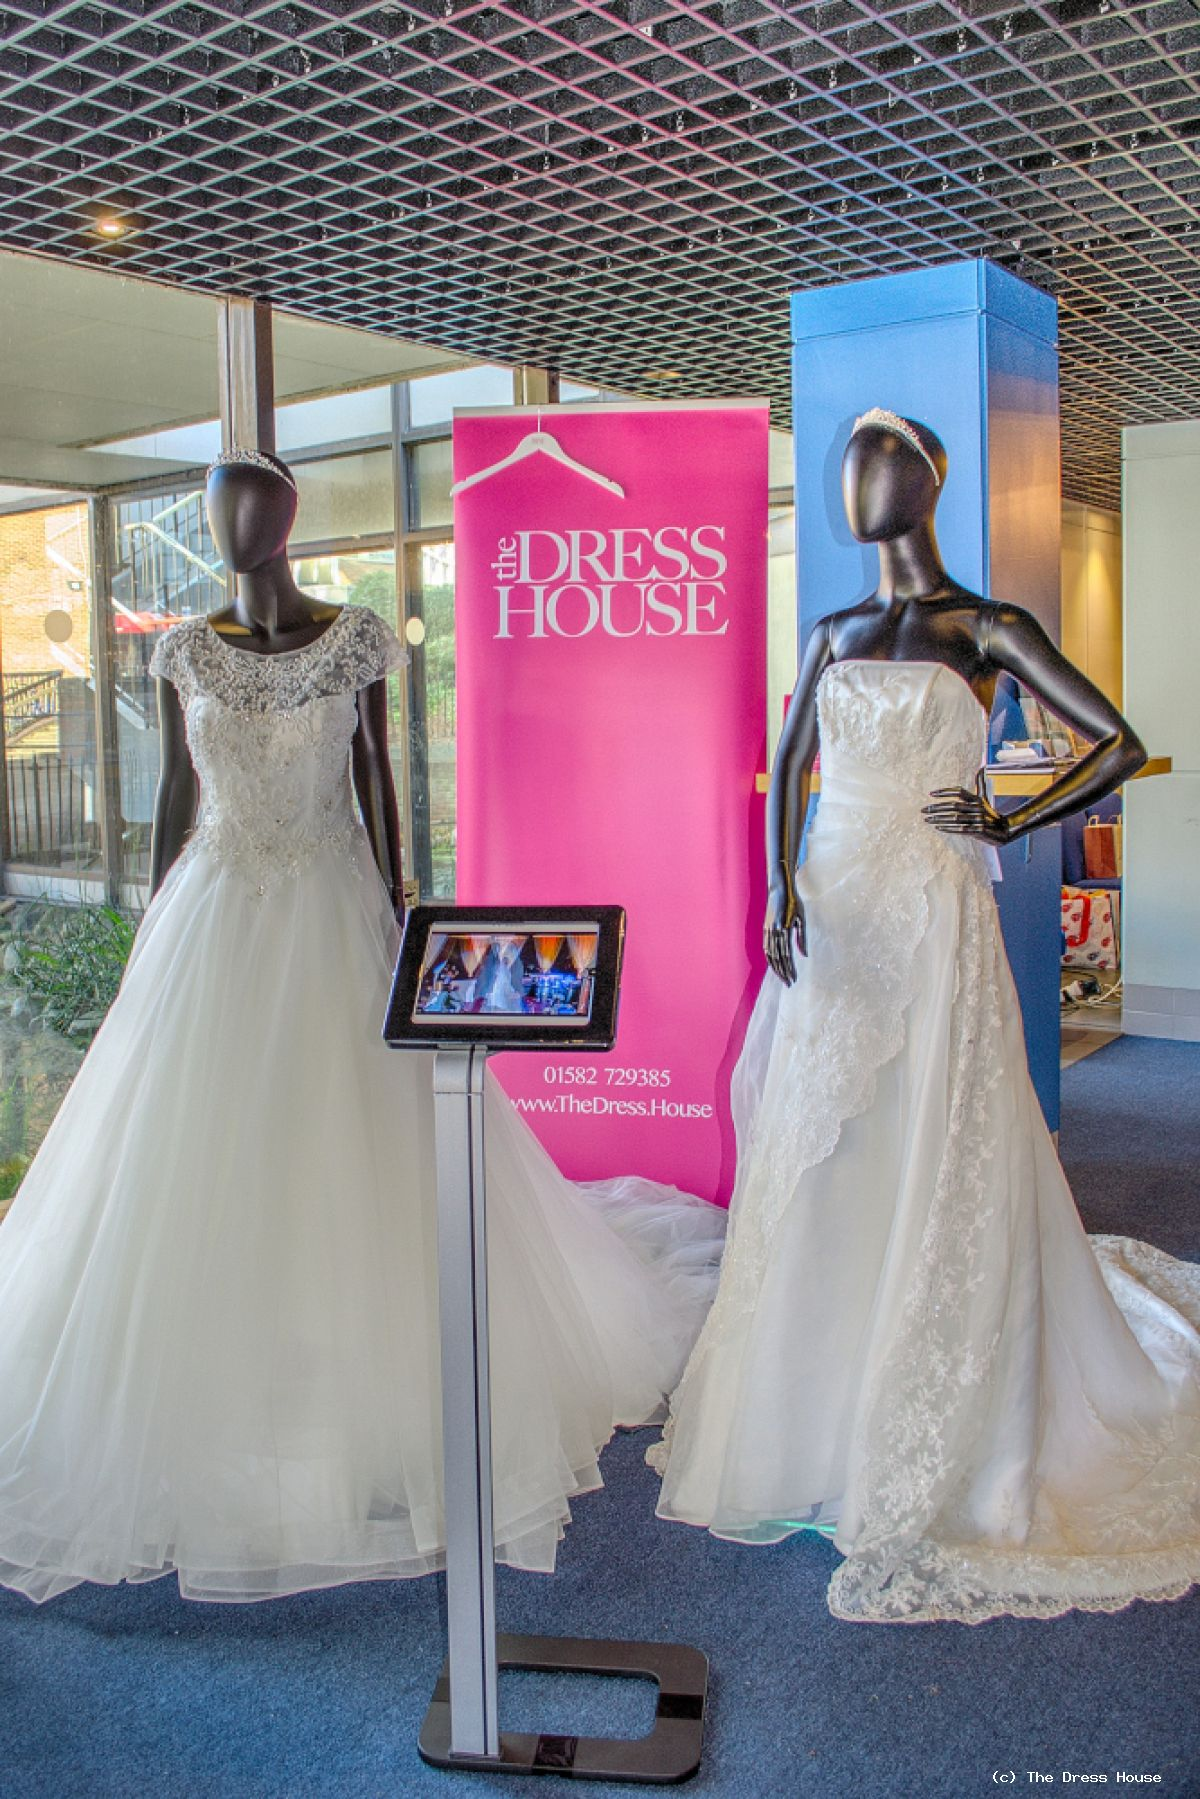 Doors Close On A Hectic St. Albans Wedding Fair | News | The Dress House